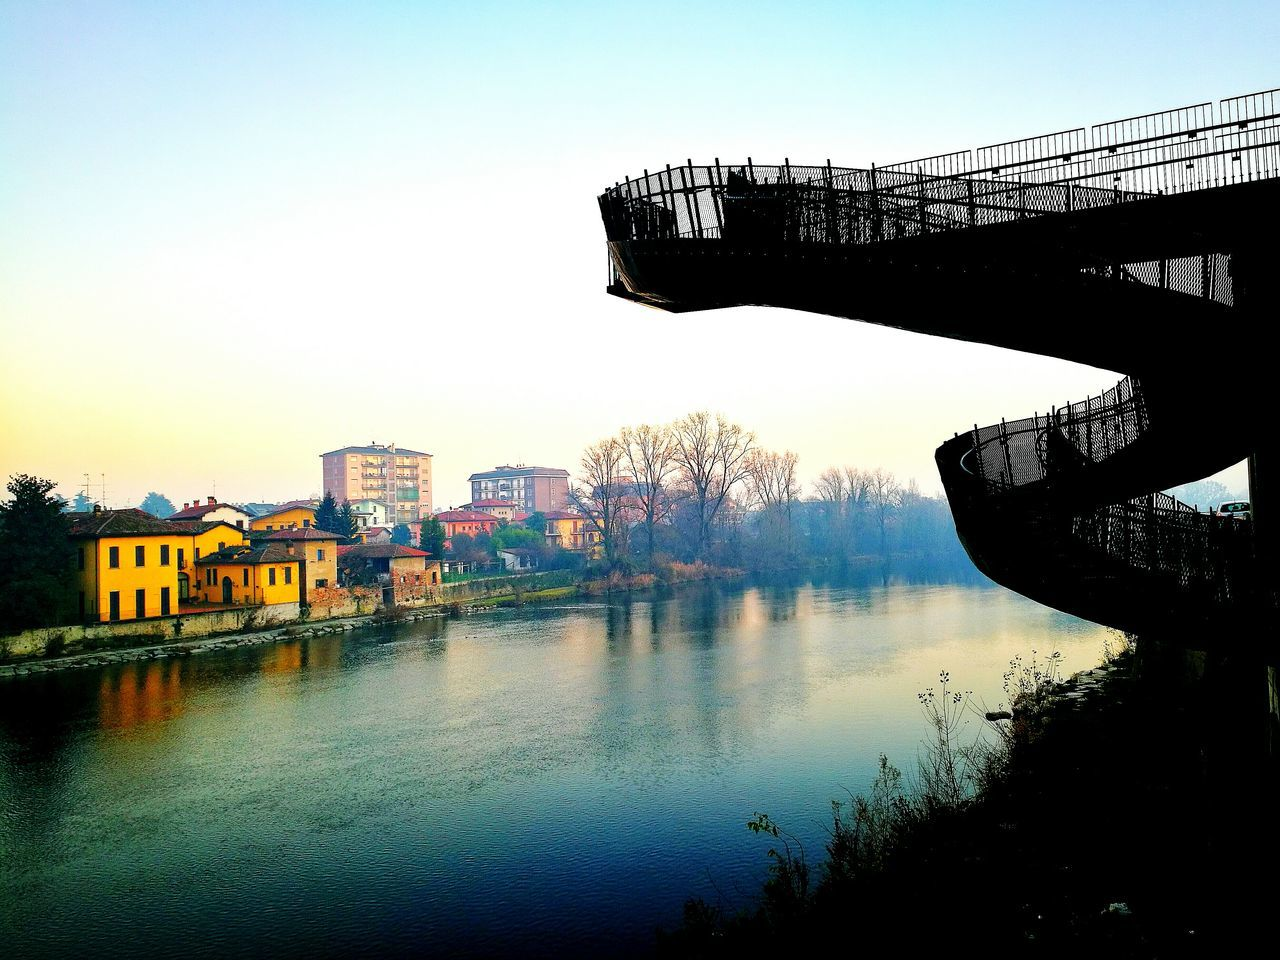 built structure, architecture, building exterior, water, river, reflection, outdoors, clear sky, no people, waterfront, bridge - man made structure, day, city, sky, nature, tree